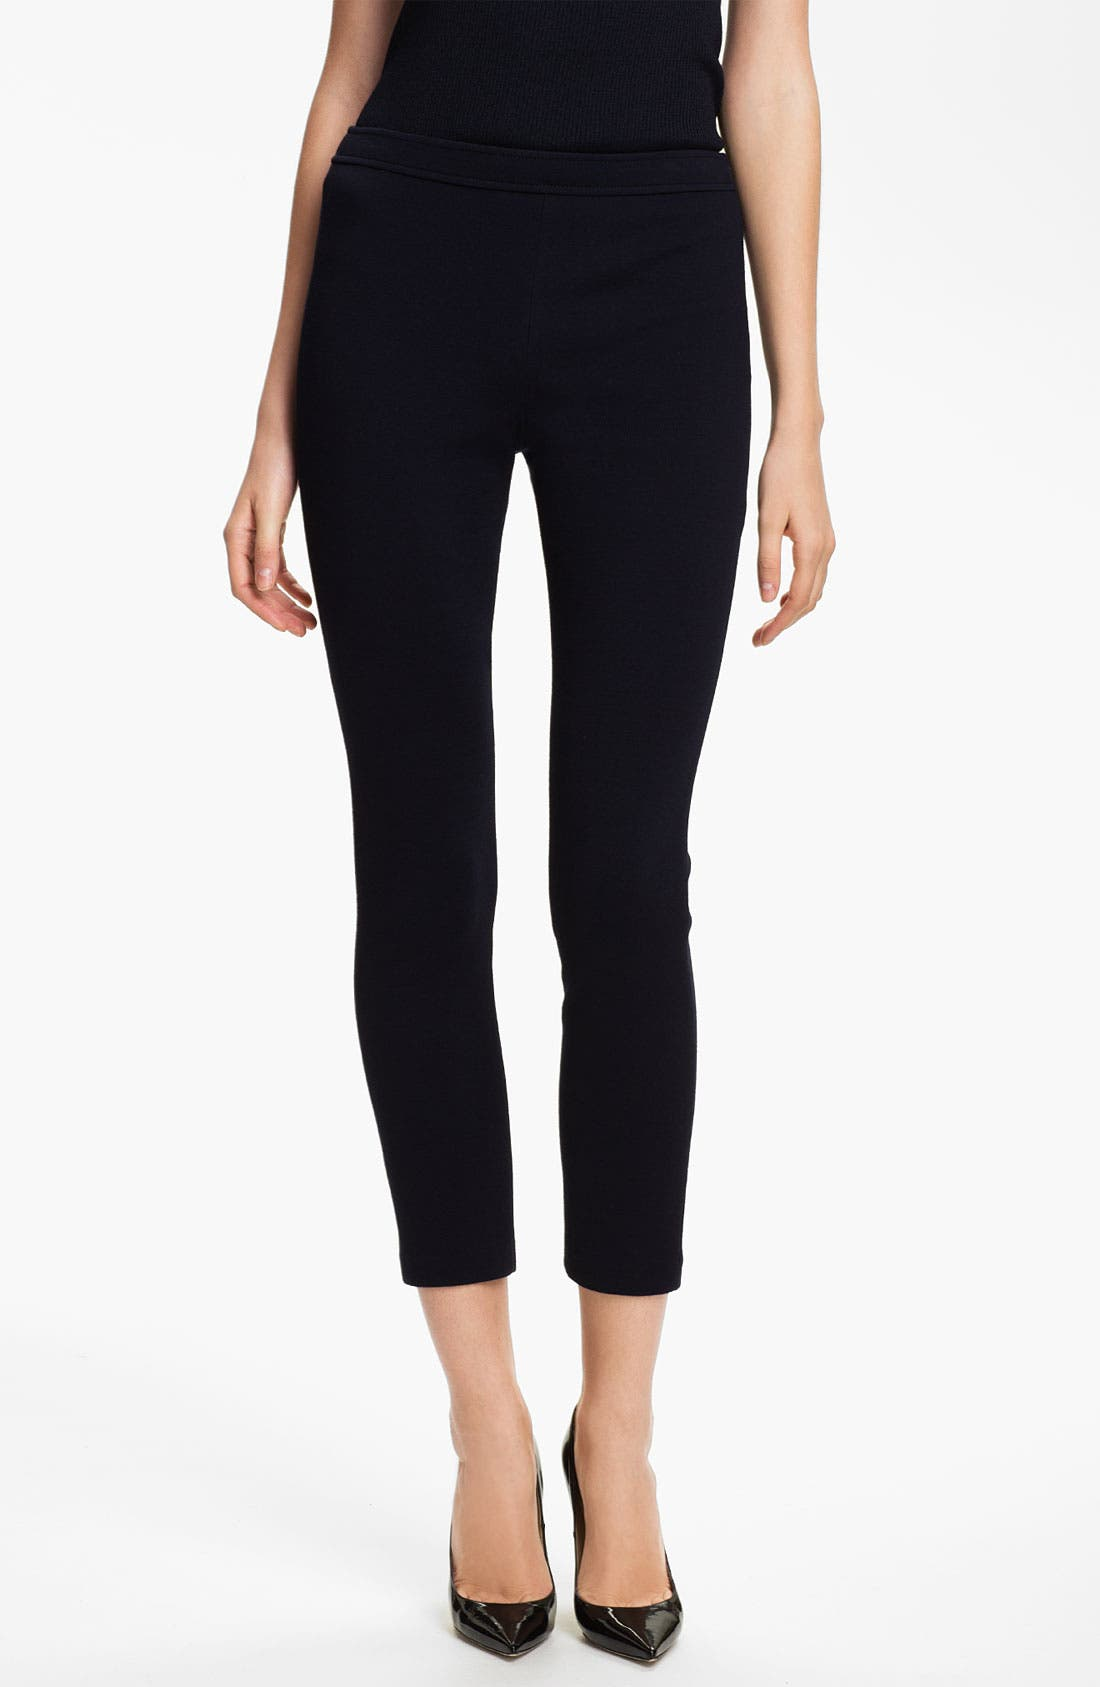 Alternate Image 1 Selected - St. John Collection 'Alexa' Stretch Milano Knit Ankle Pants